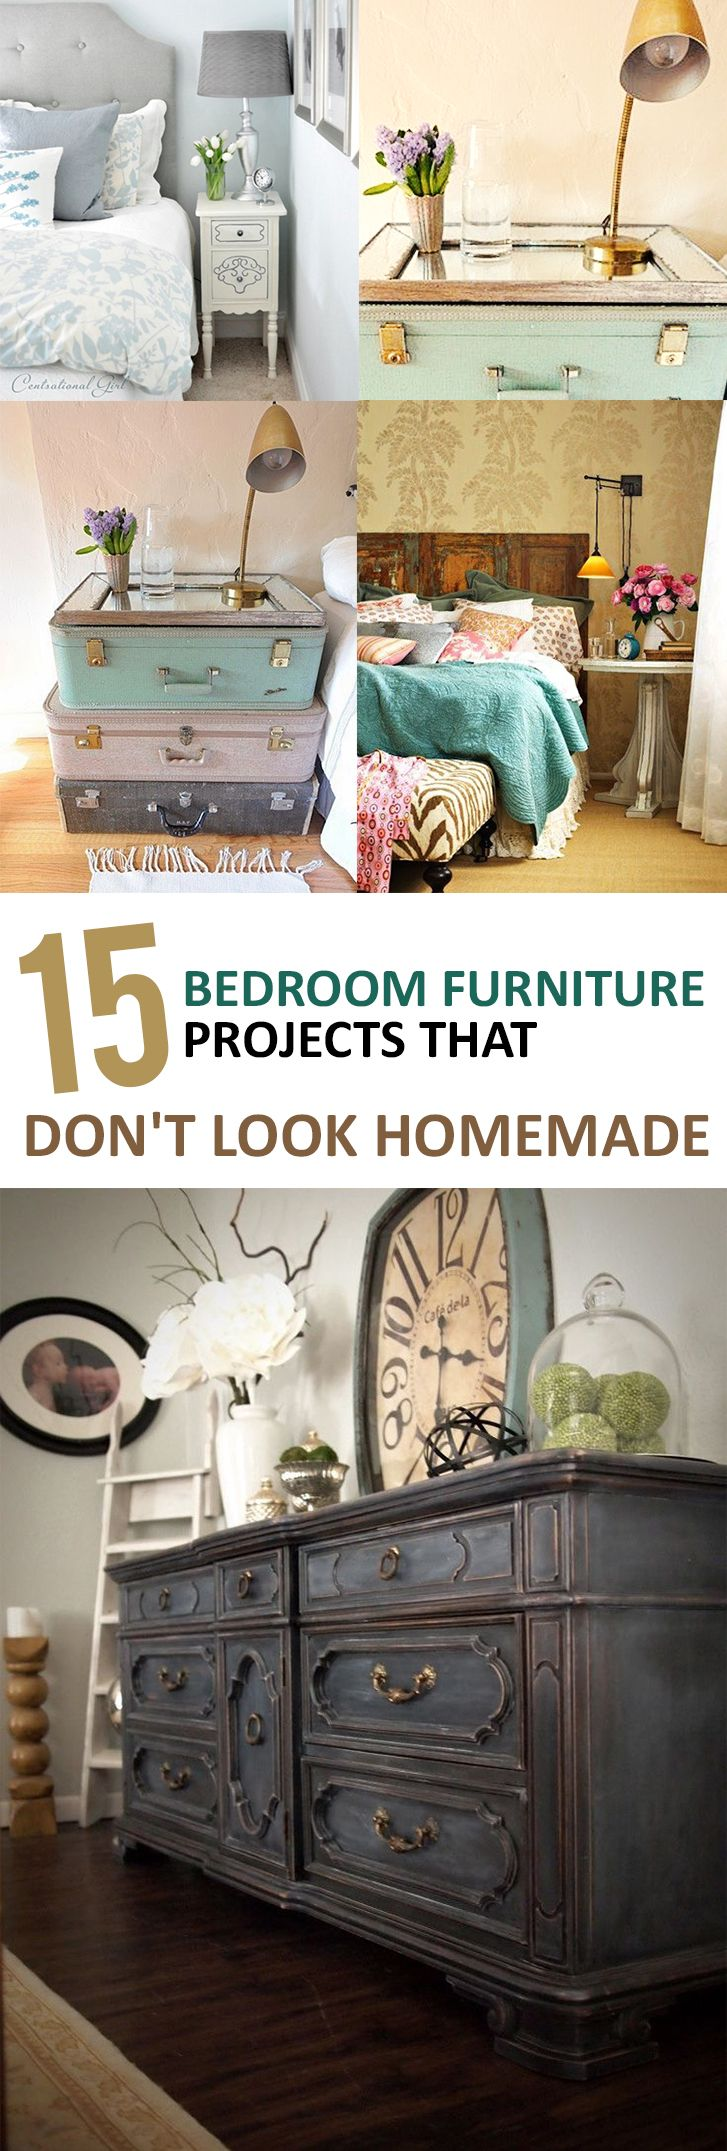 Charming 15 Bedroom Furniture Projects That Donu0027t Look Homemade